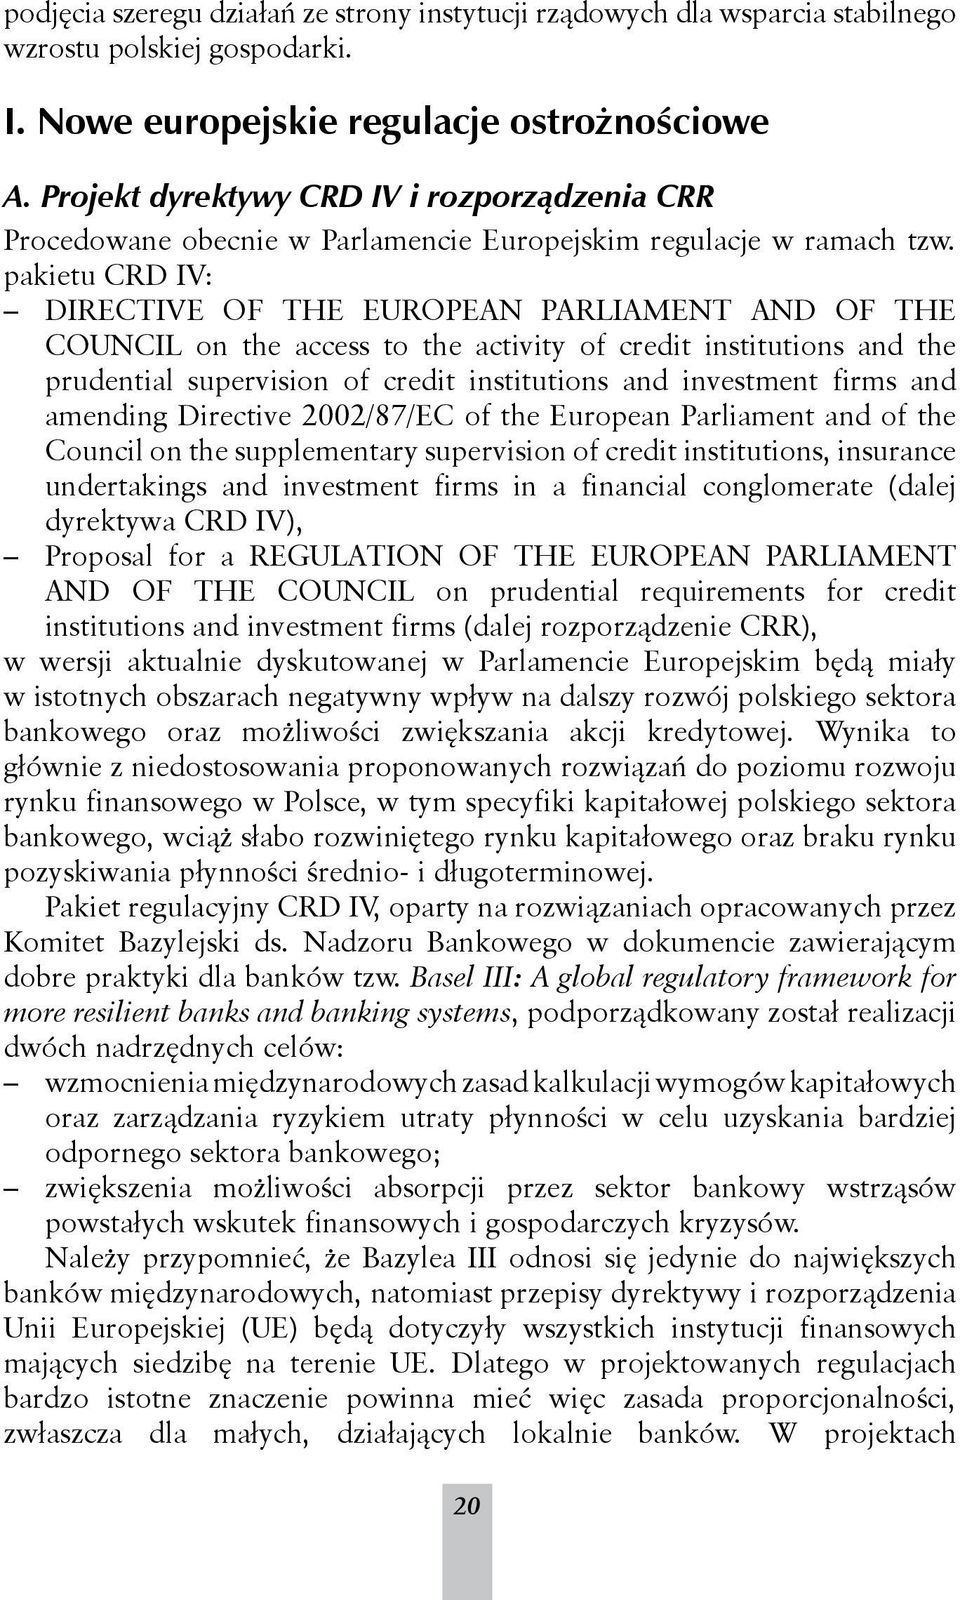 pakietu CRD IV: DIRECTIVE OF THE EUROPEAN PARLIAMENT AND OF THE COUNCIL on the access to the activity of credit institutions and the prudential supervision of credit institutions and investment firms